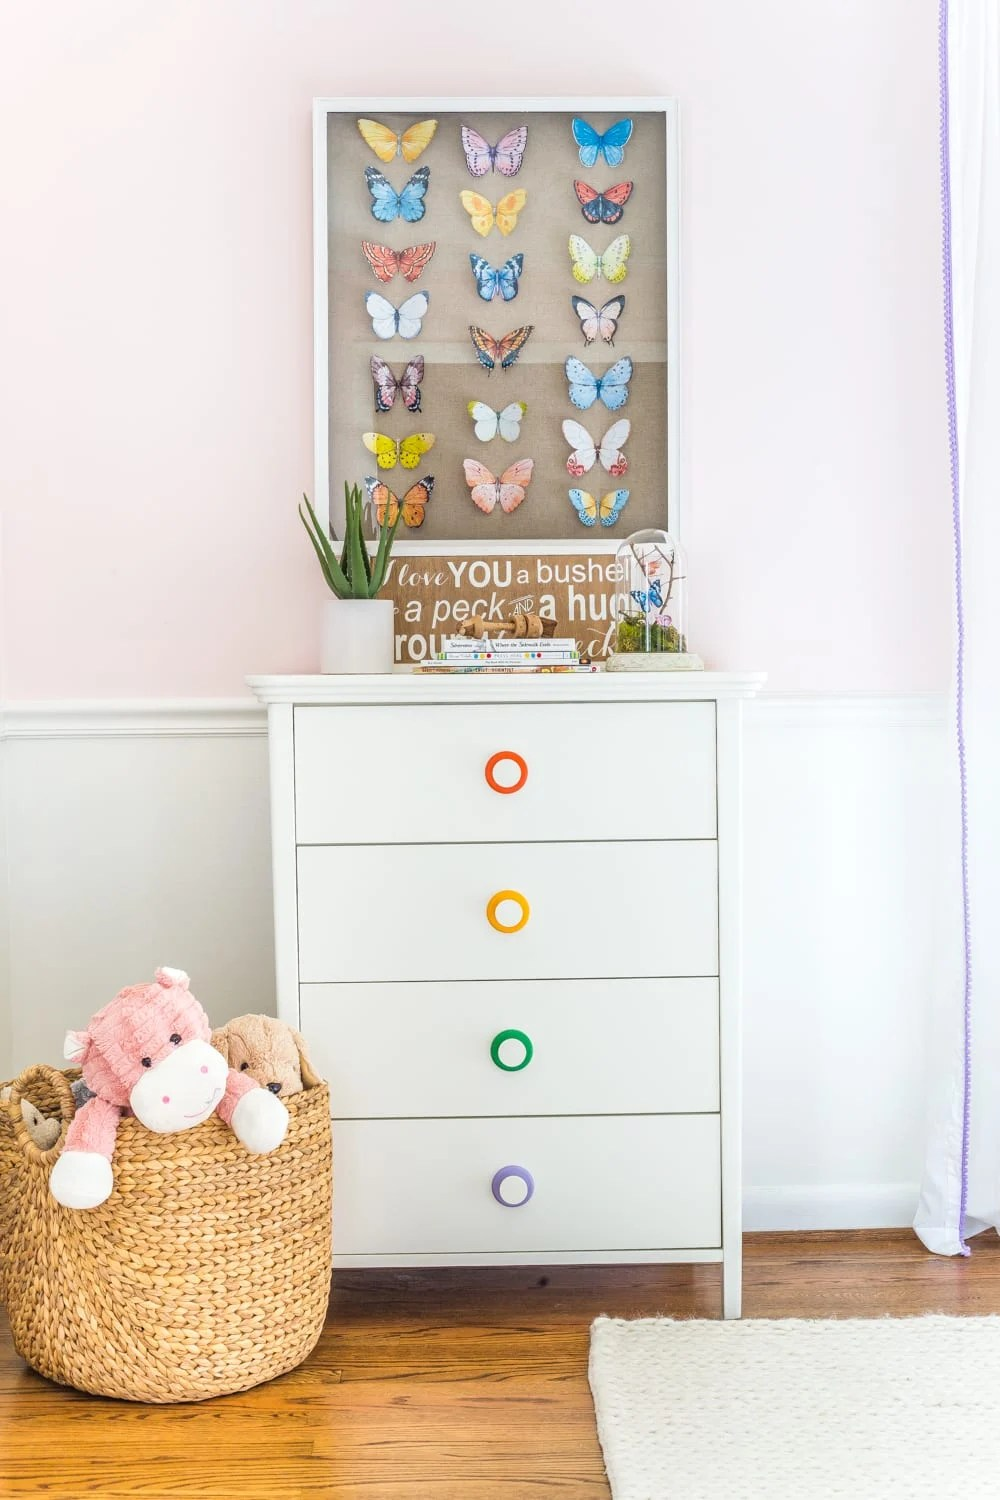 Why secondhand dressers are not always the best solution + top picks from the Flower Kids home decor line from Walmart.